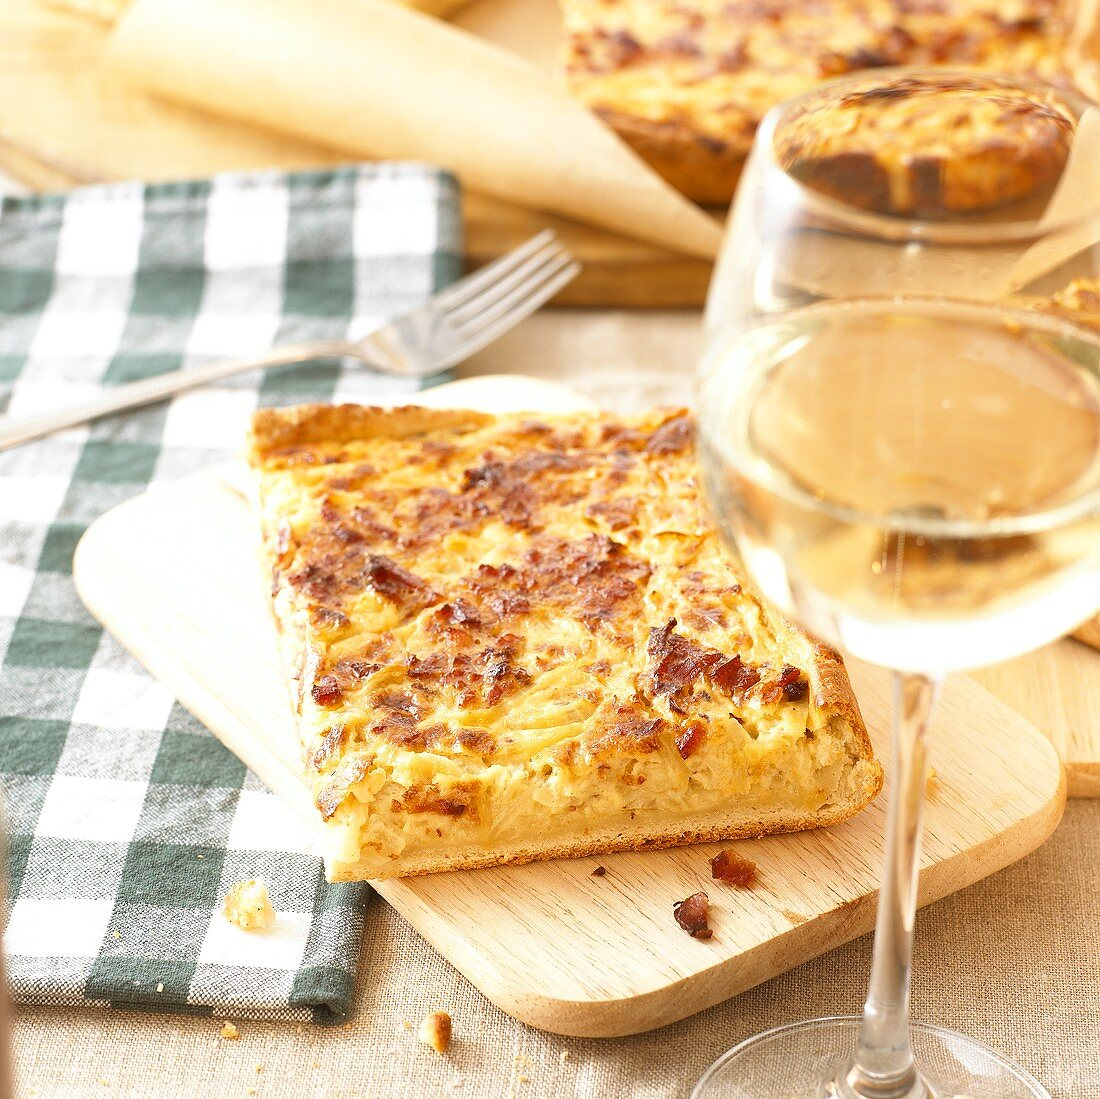 Onion quiche with bacon on chopping board; glass of white wine